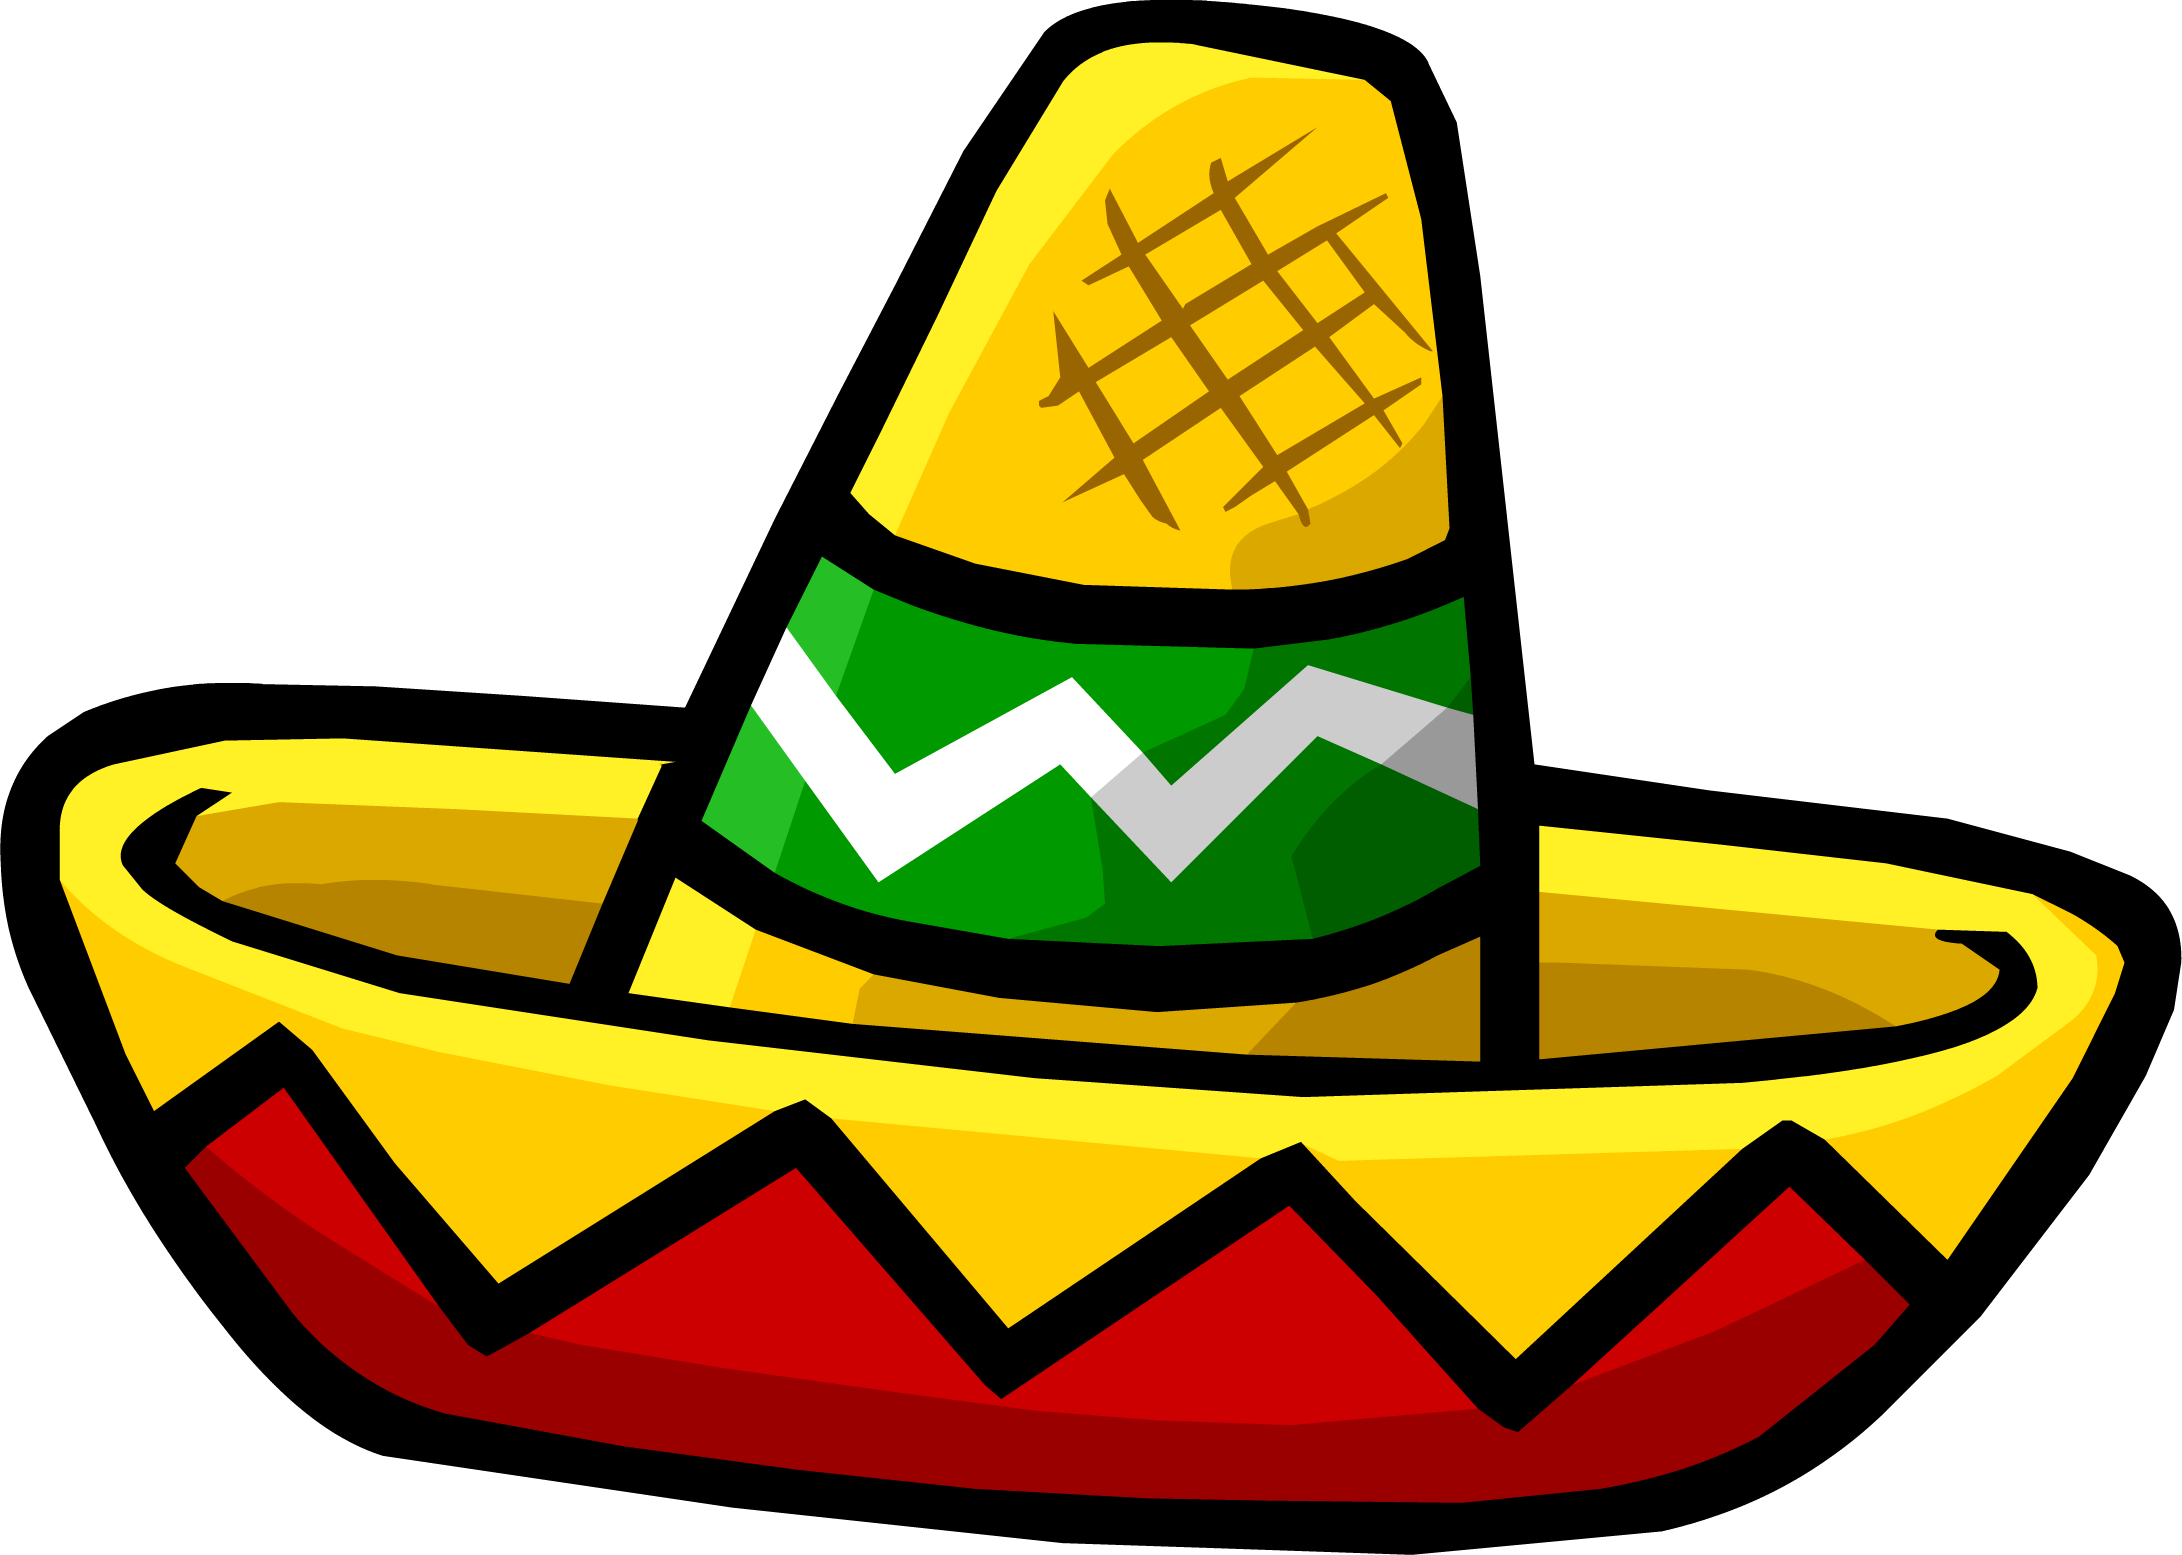 Spanish clipart flag and sombrero banner transparent download Spanish Clipart Free | Free download best Spanish Clipart ... banner transparent download